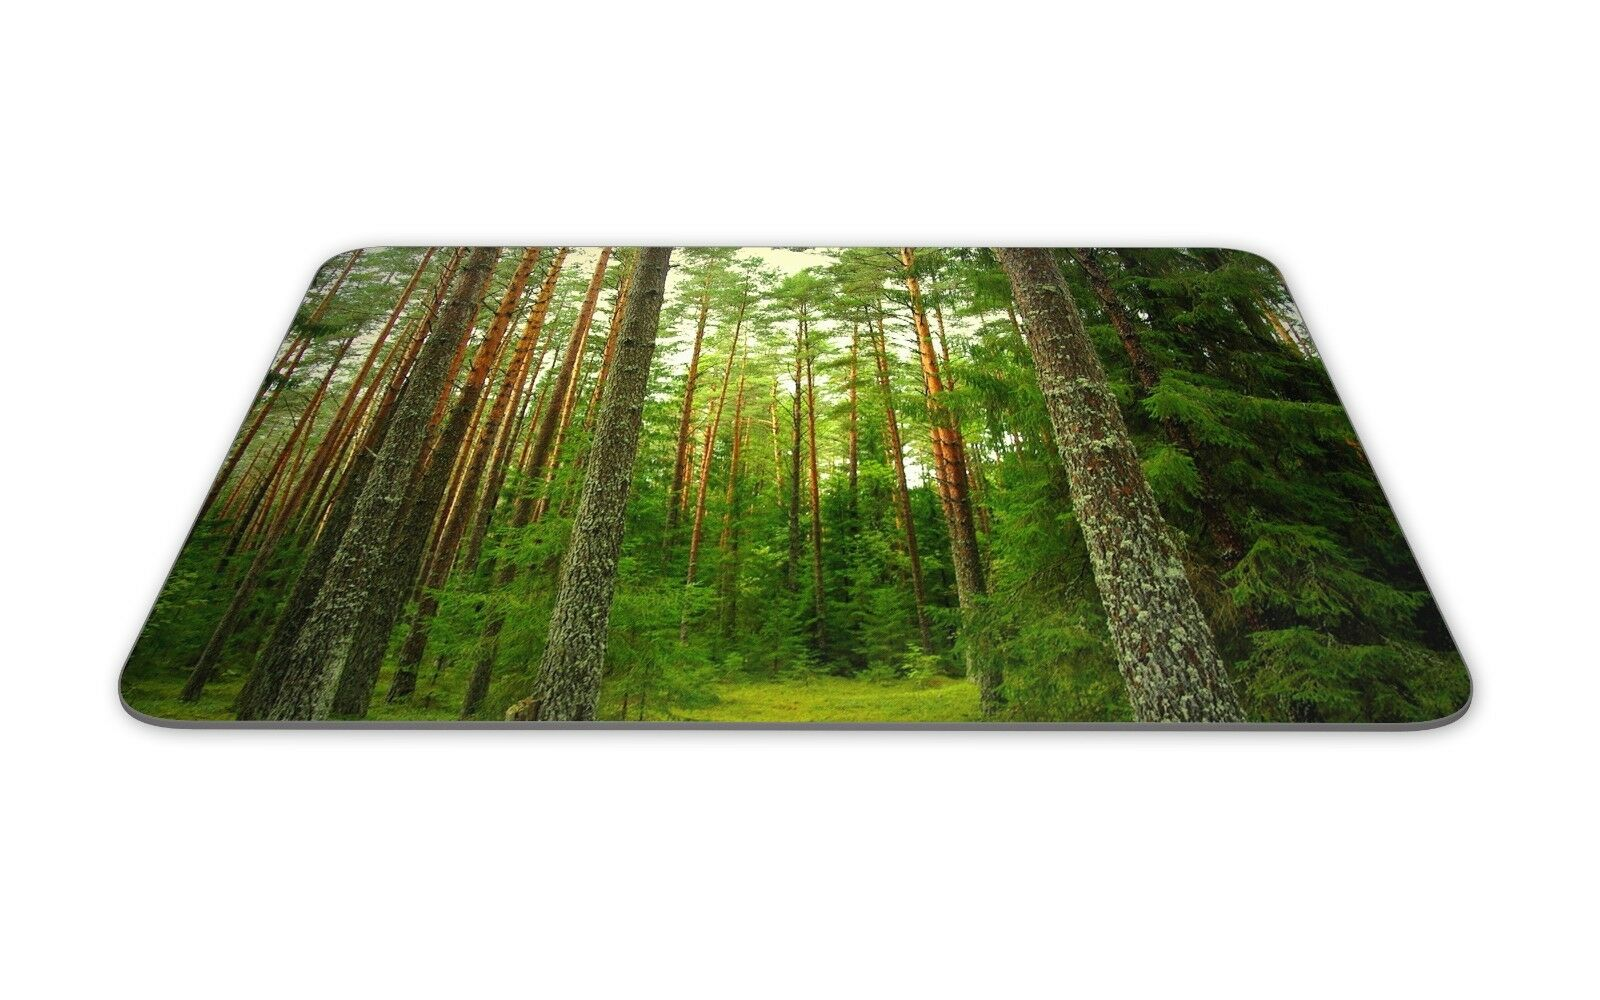 Tree Mouse Pad • Tall Pine Trees Forest Sky Nature Gift Decor Desk Accessory